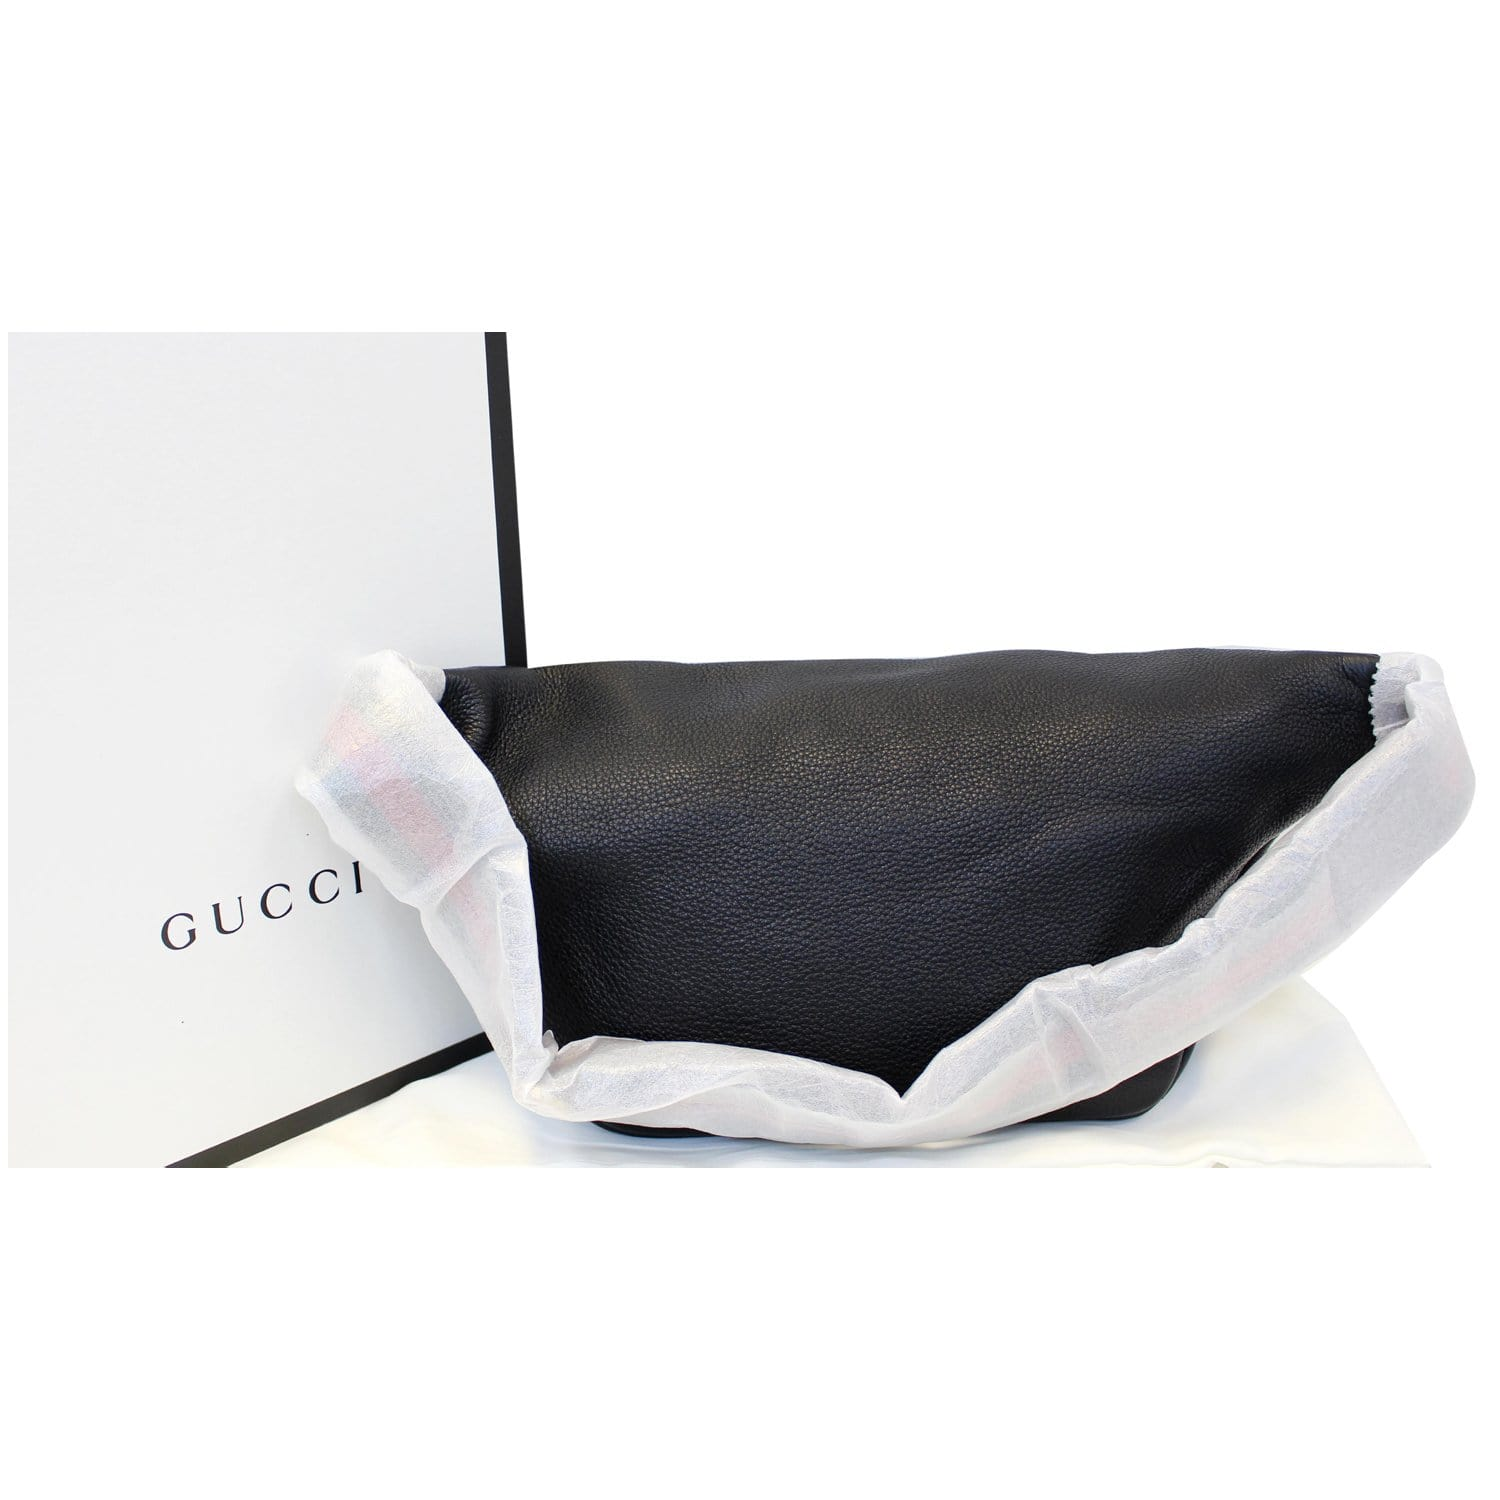 9c541be1266 GUCCI Print Leather Black Belt Waist Bum Bag Medium 530412-US